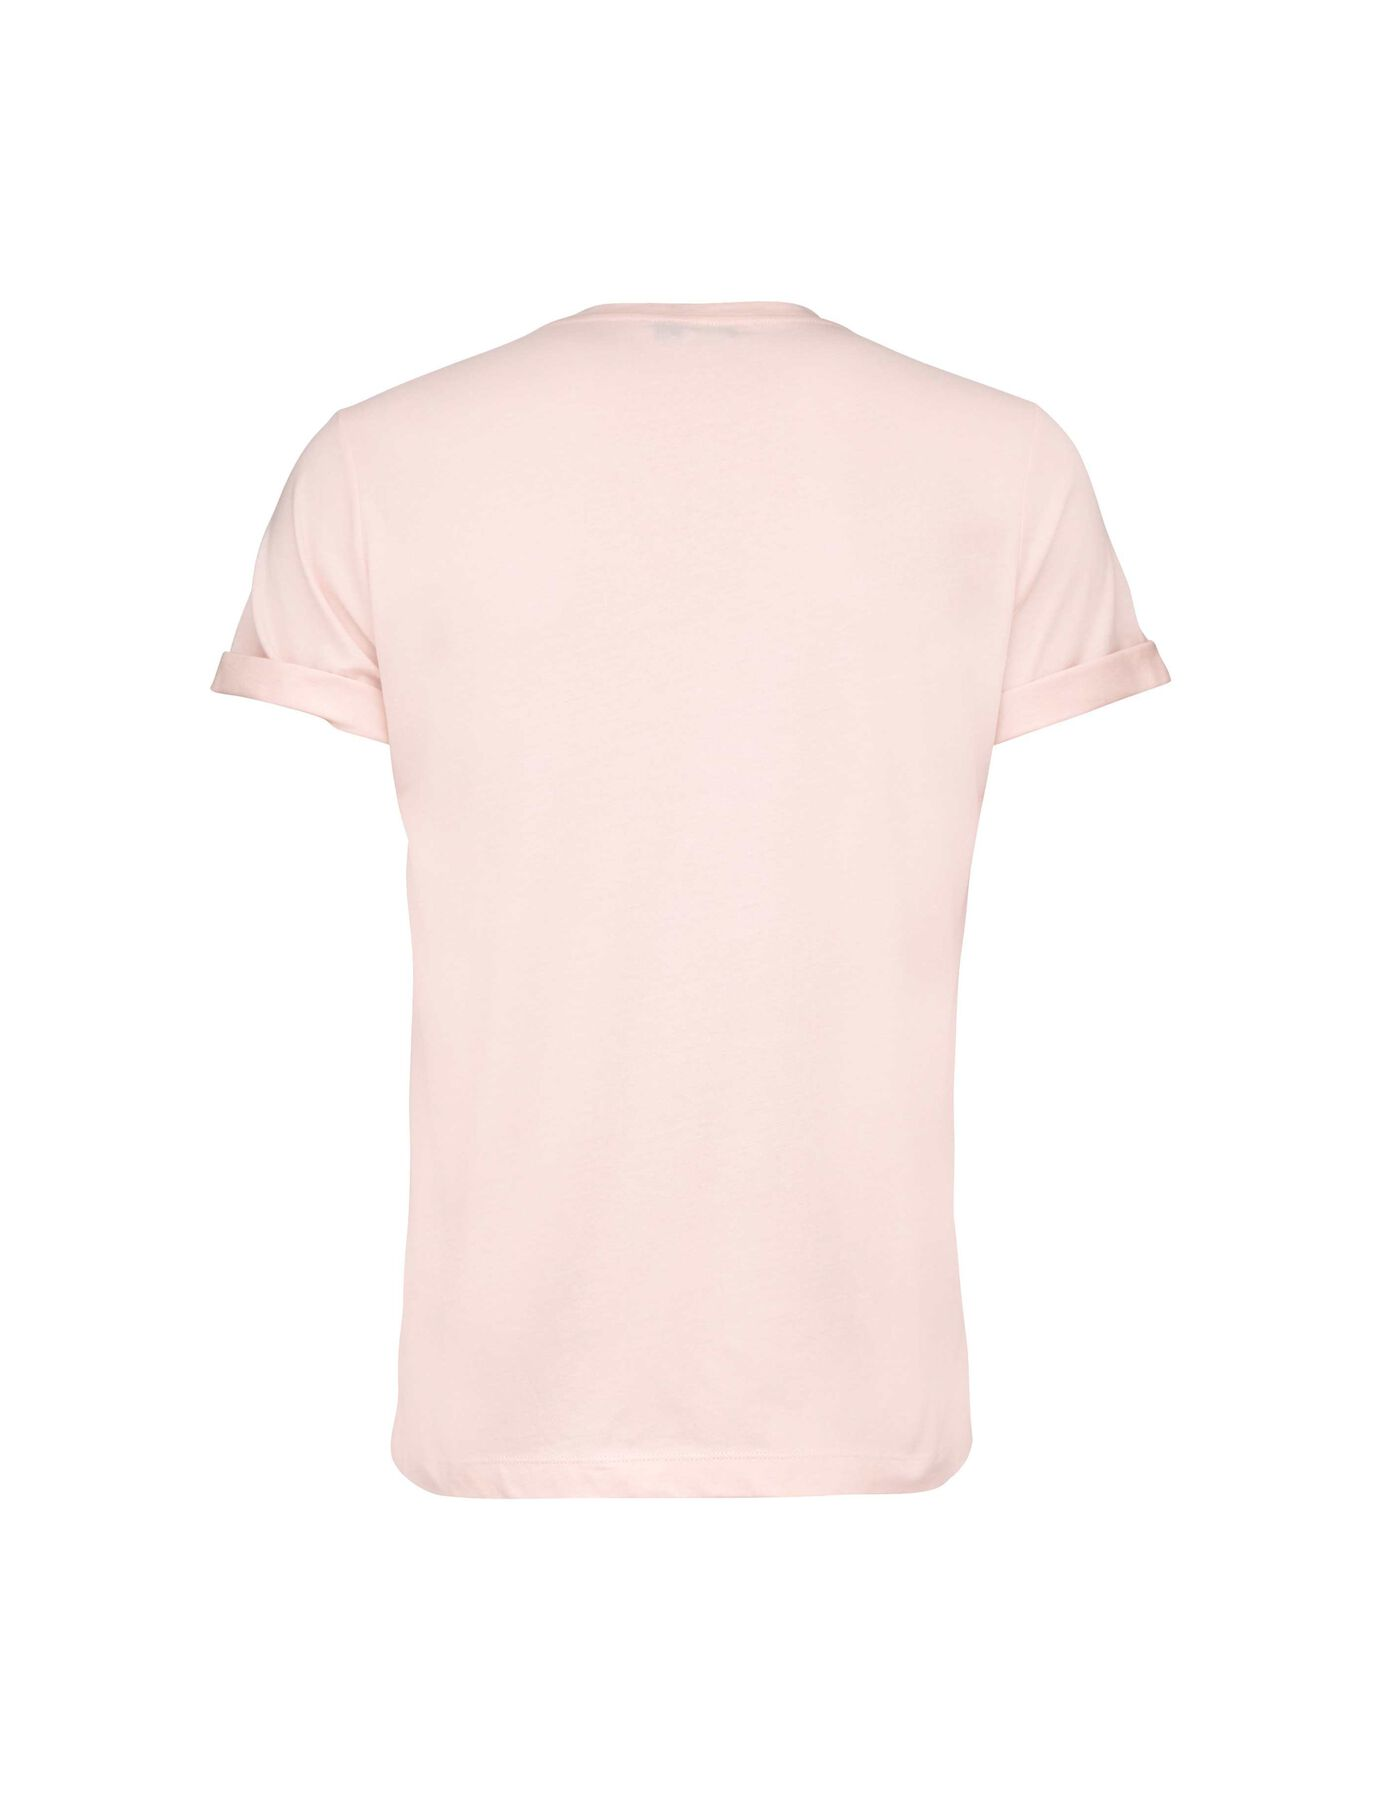 KIET T-SHIRT in Chintz Rose from Tiger of Sweden